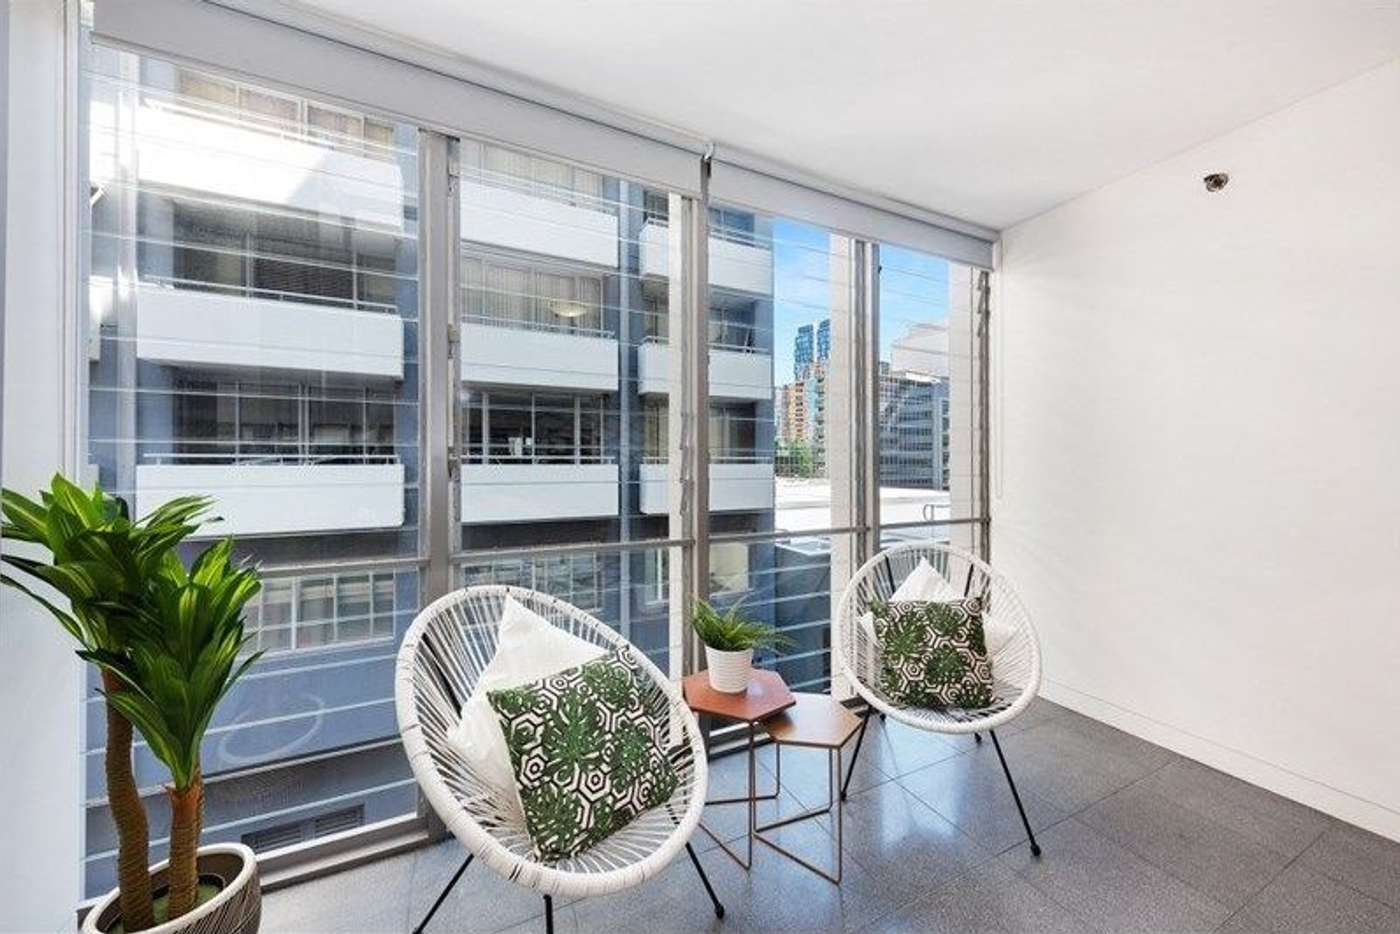 Sixth view of Homely apartment listing, 302/11 Chandos Street, St Leonards NSW 2065